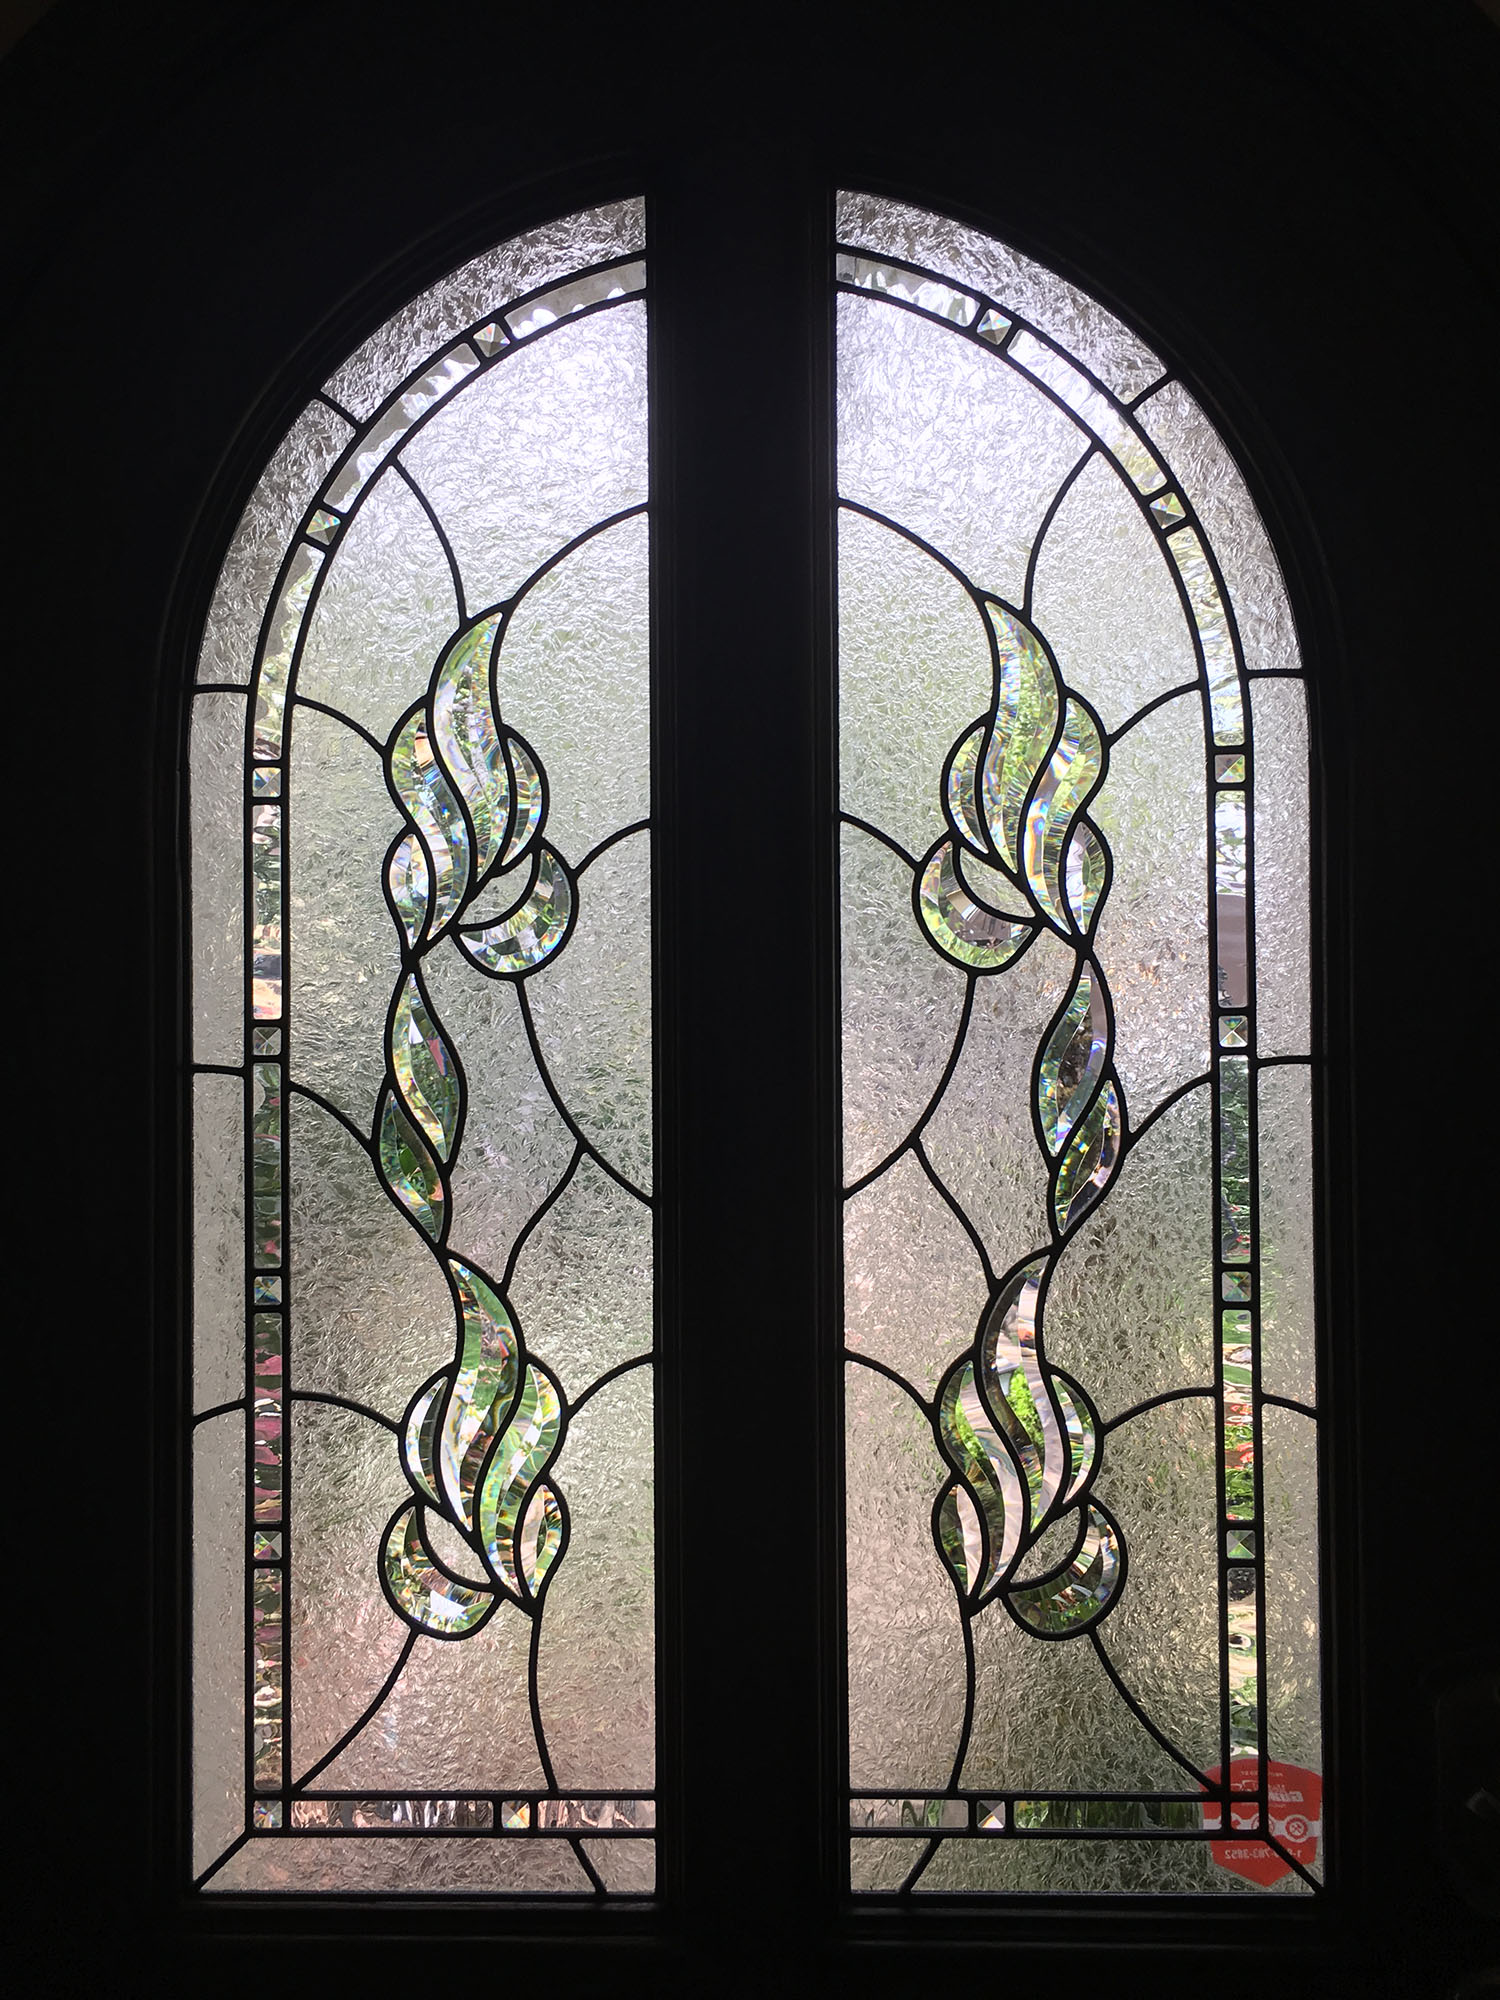 bevel cluster clear texture double glue chip beveled leaded glass stained glass window palo alto atherton california san francisco.jpg